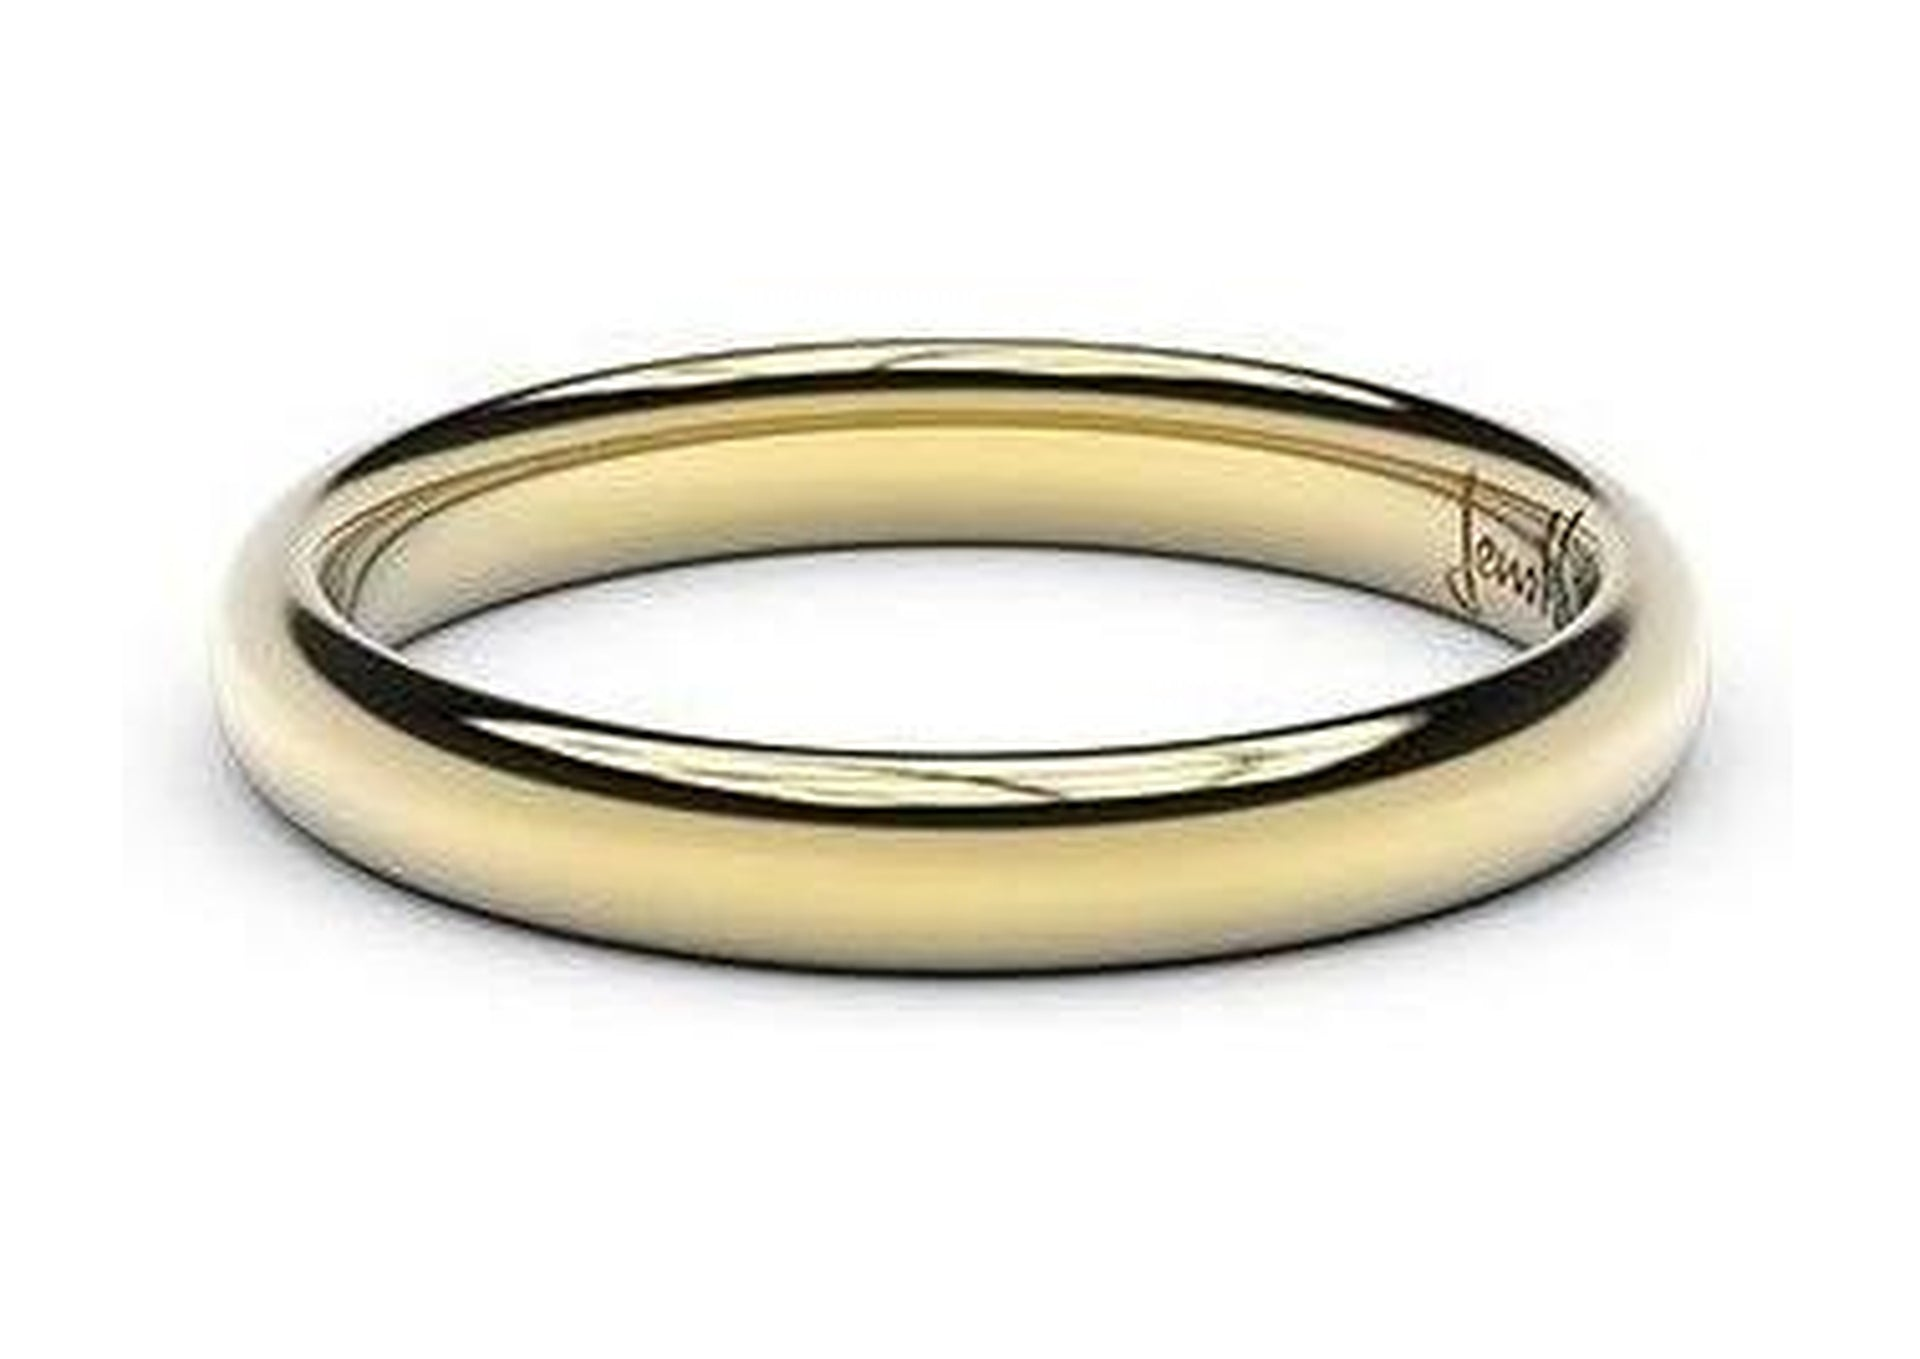 Petite Replica Ring - 3mm wide, 22ct Yellow Gold